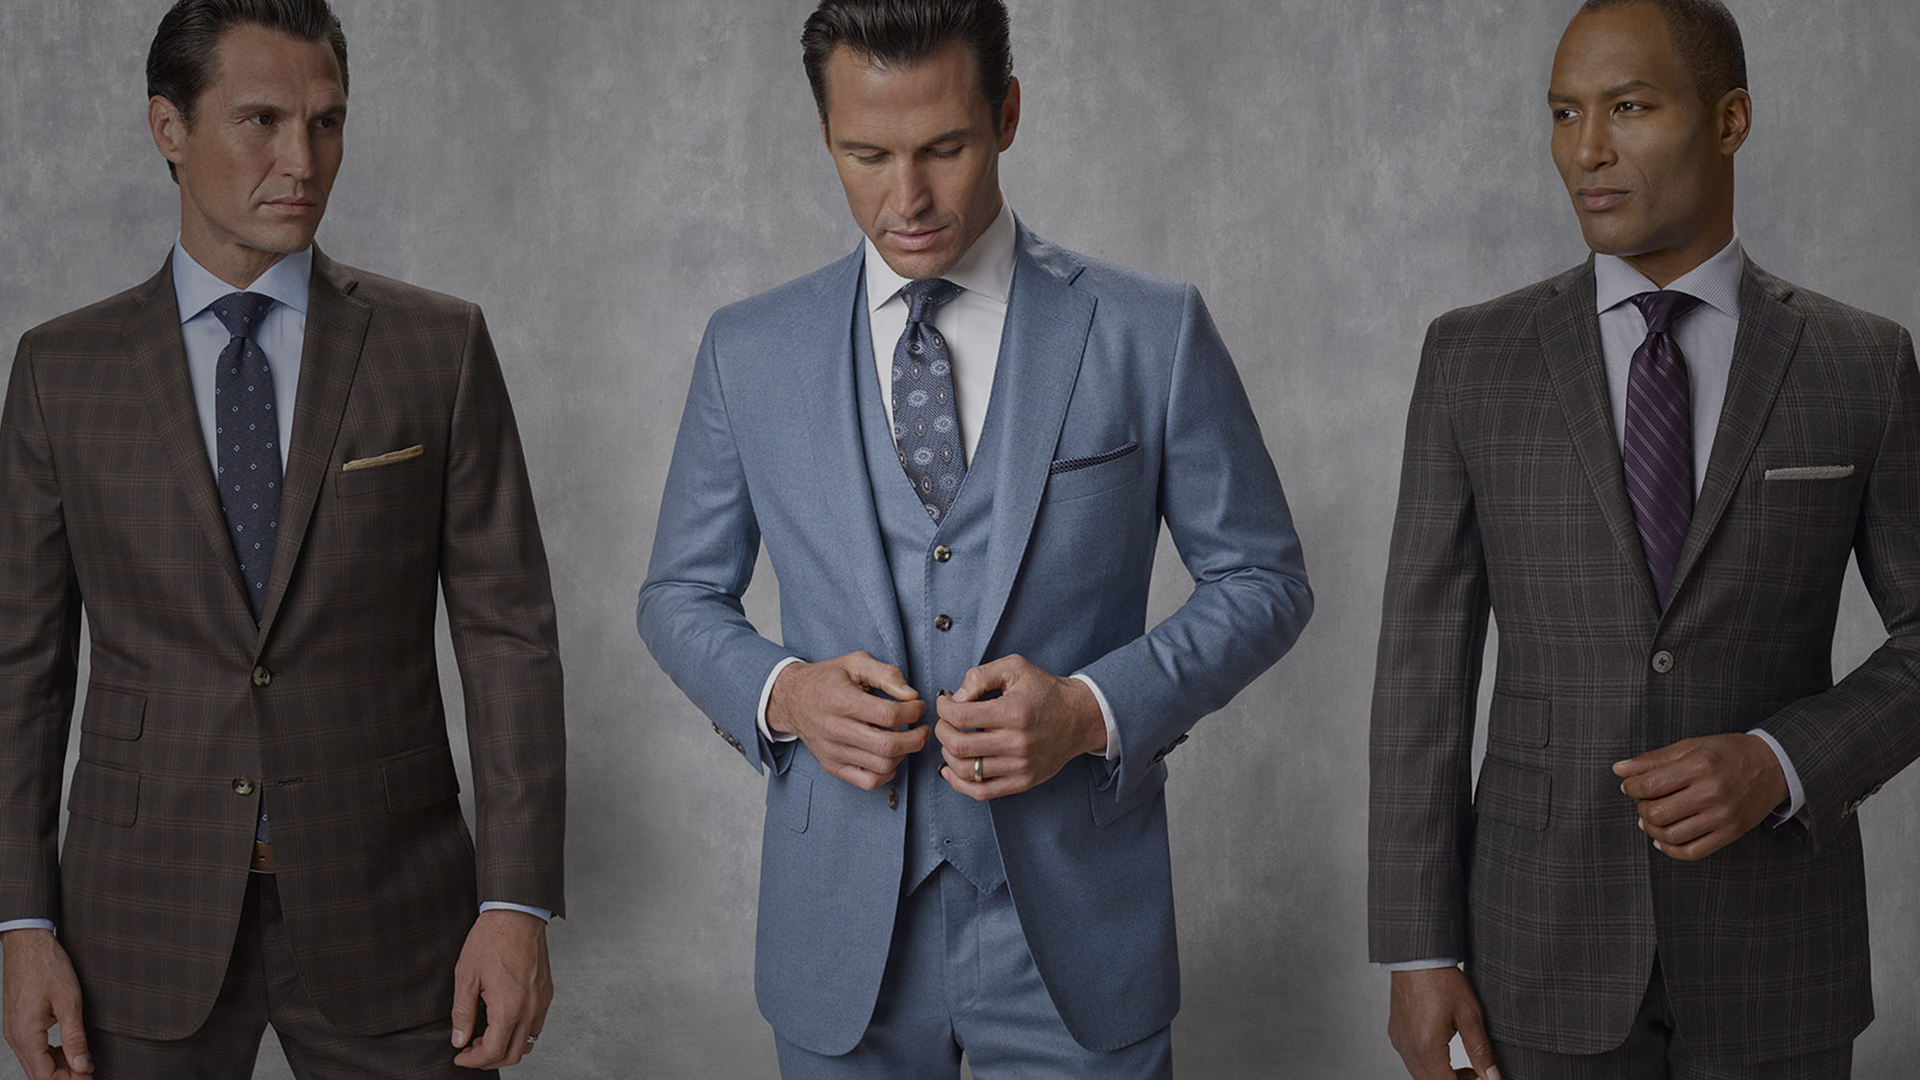 Tom James Company Reviews, Ratings | Formal Wear near Executive Recruiters Building , Little Rock AR